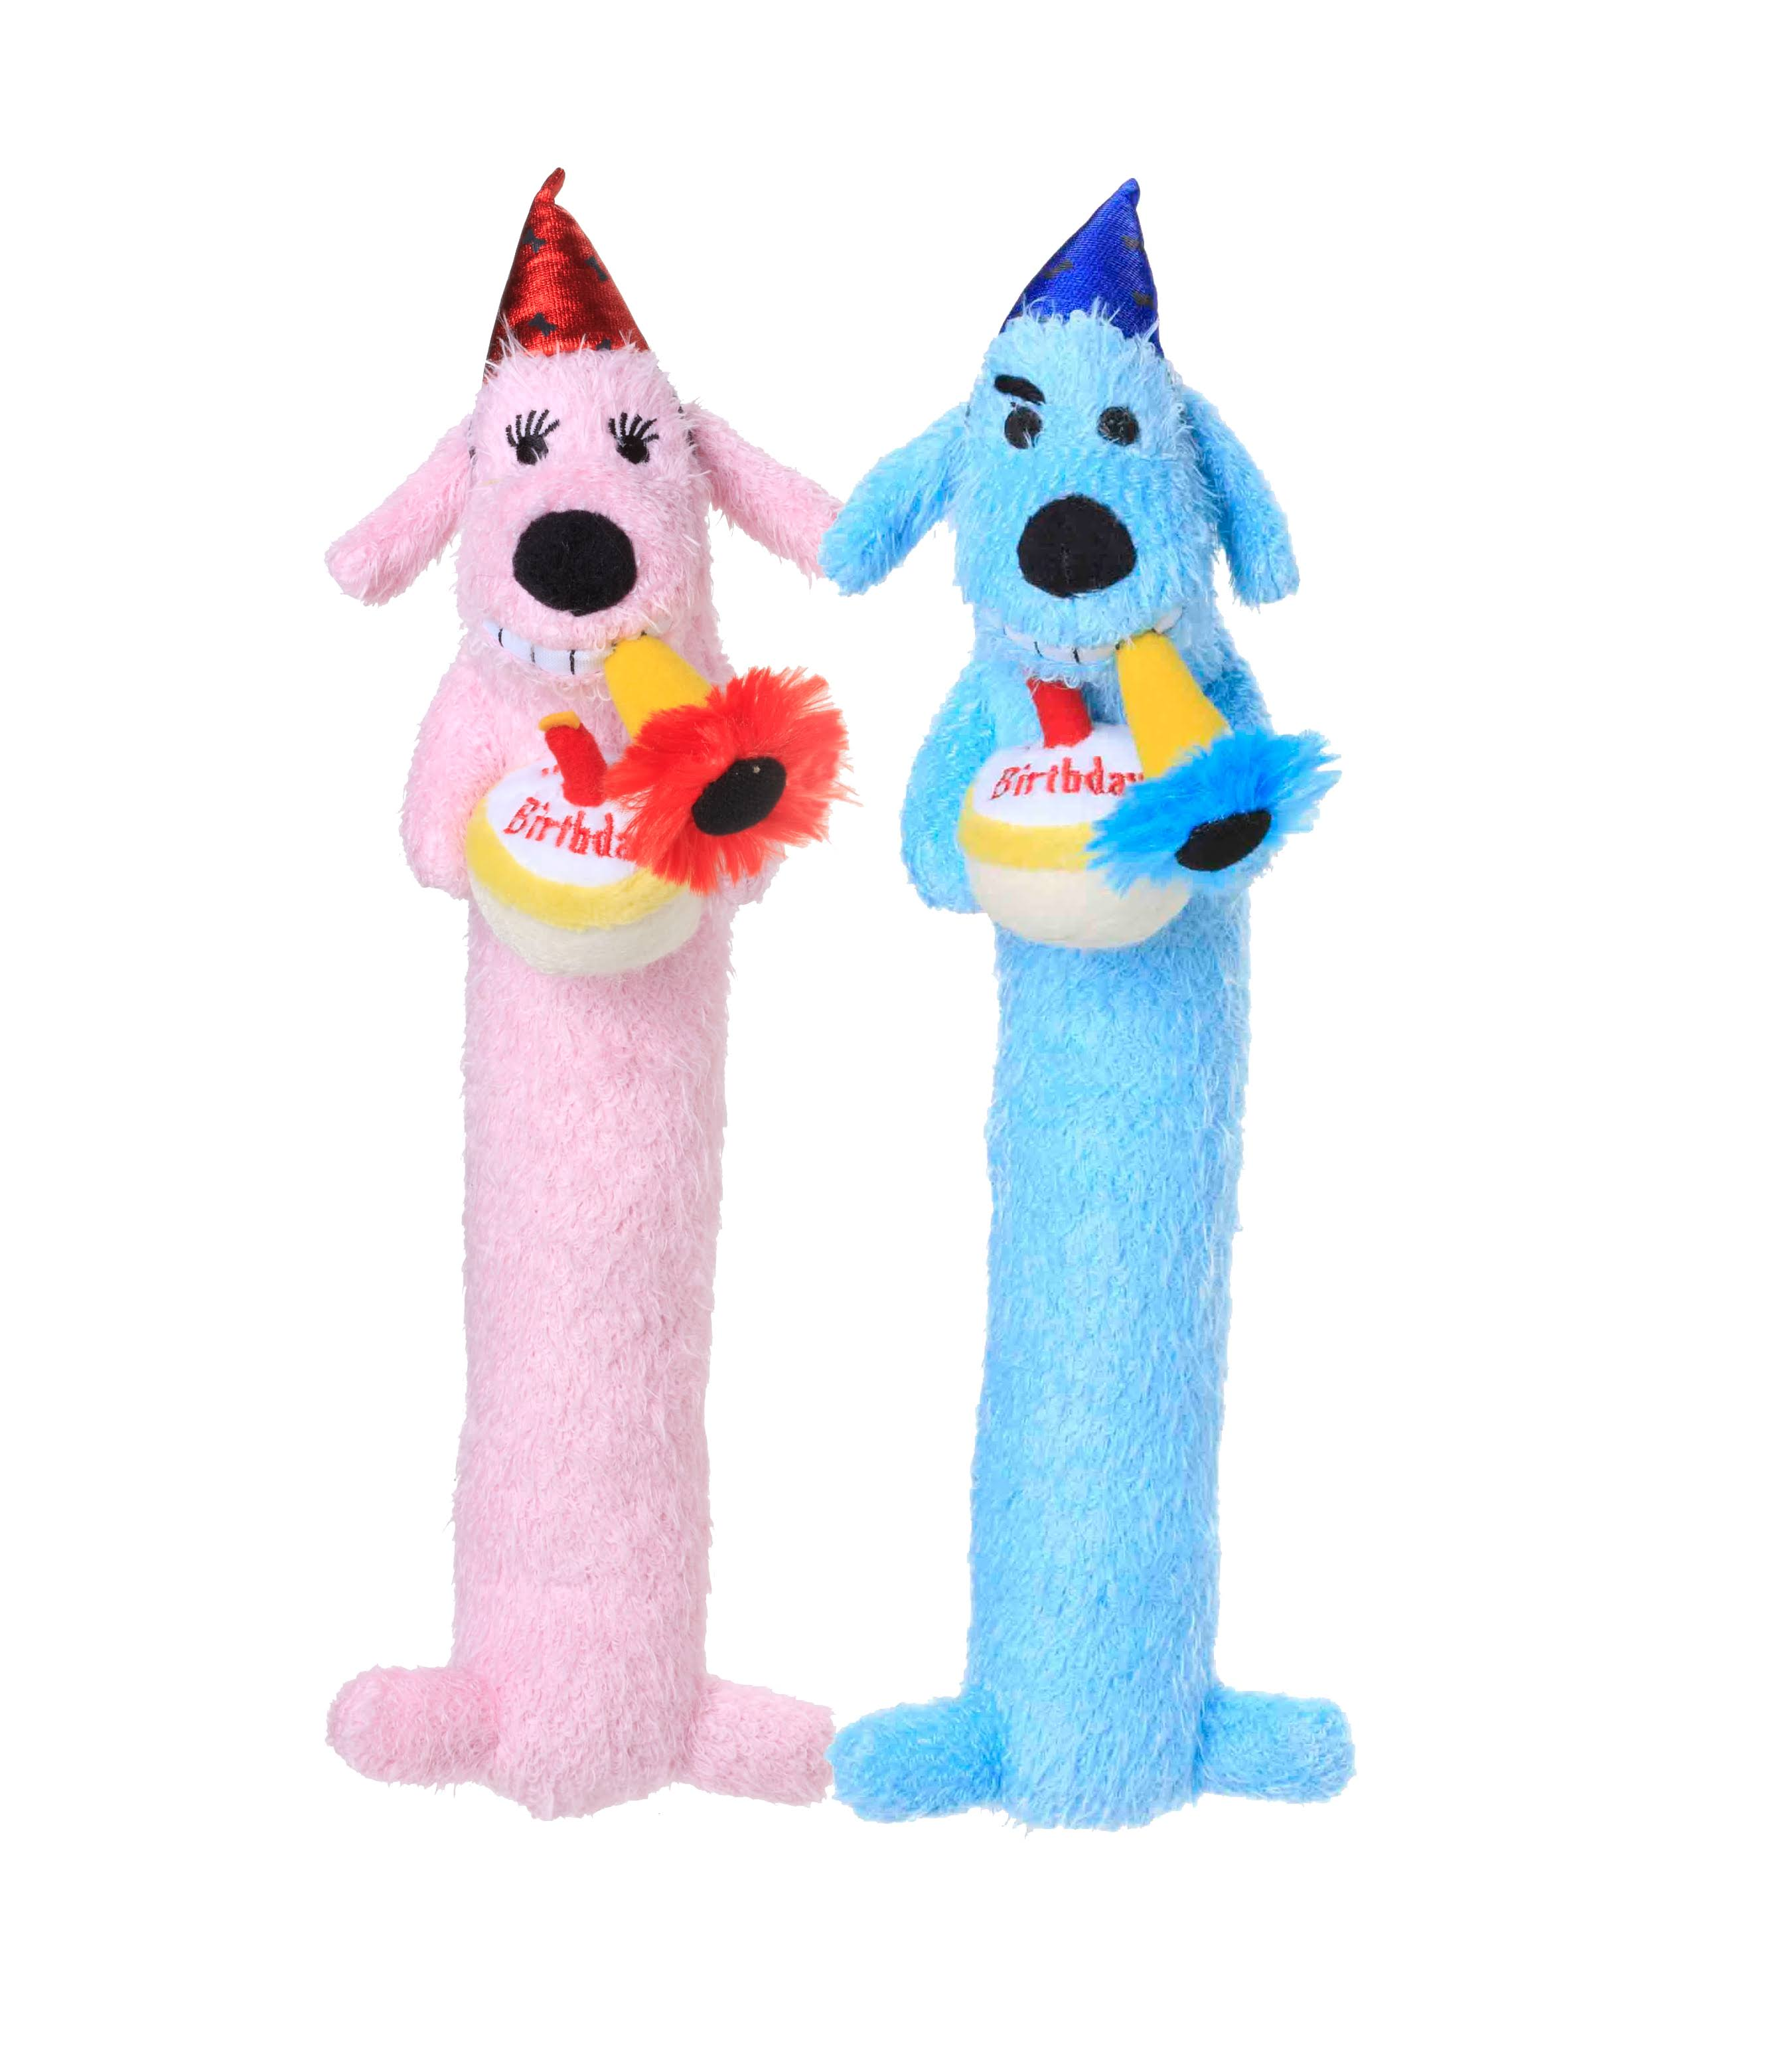 Multipet's 12-inch Happy Birthday Loofa Dog Toy